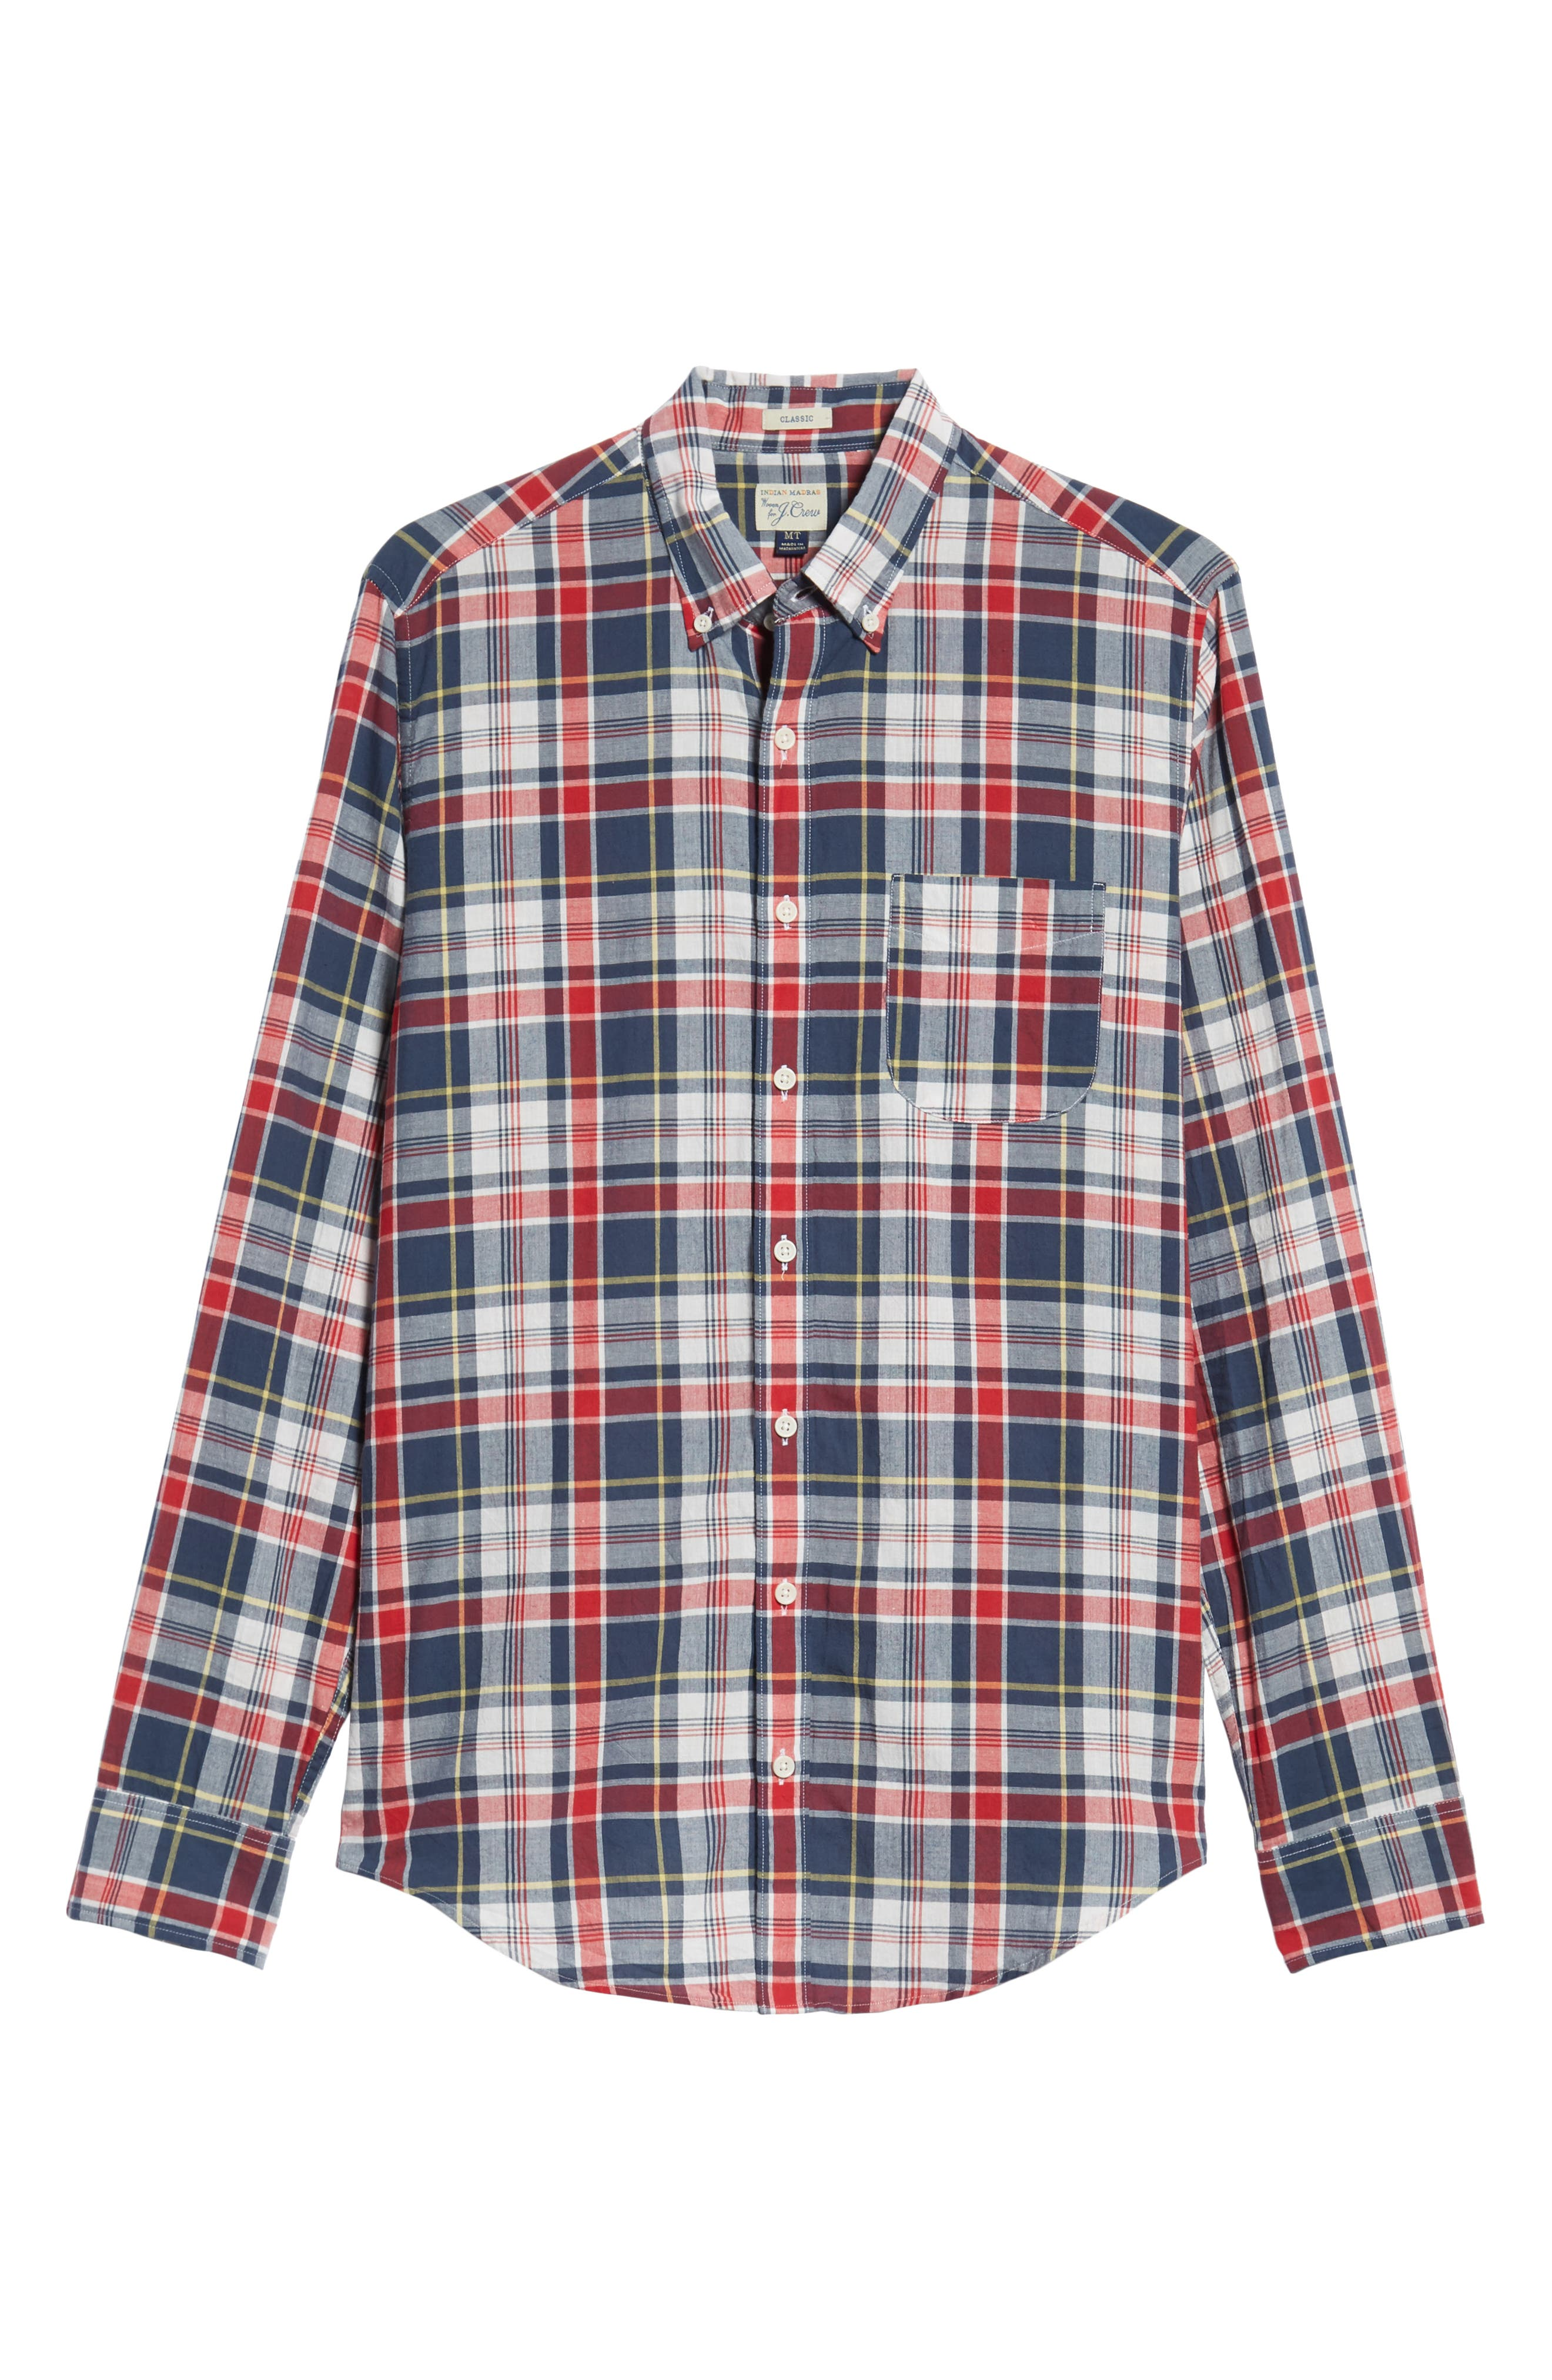 Regular Fit Madras Plaid Sport Shirt,                             Alternate thumbnail 5, color,                             Navy Ink